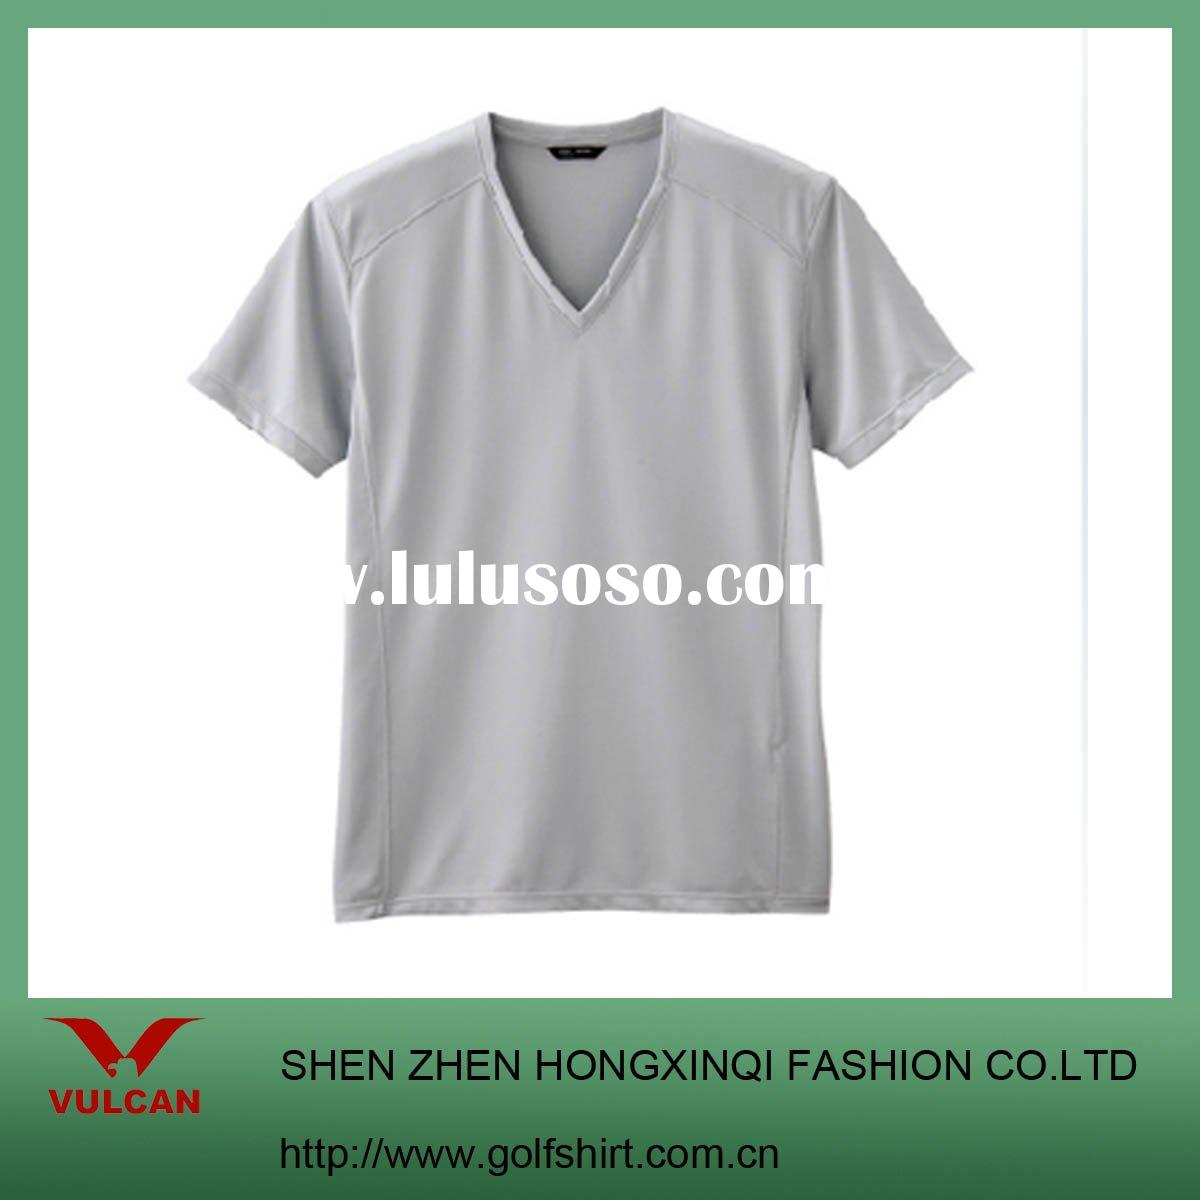 Men's Plain gray Short Sleeve T Shirt, V-neck. Accept Your Own Designs